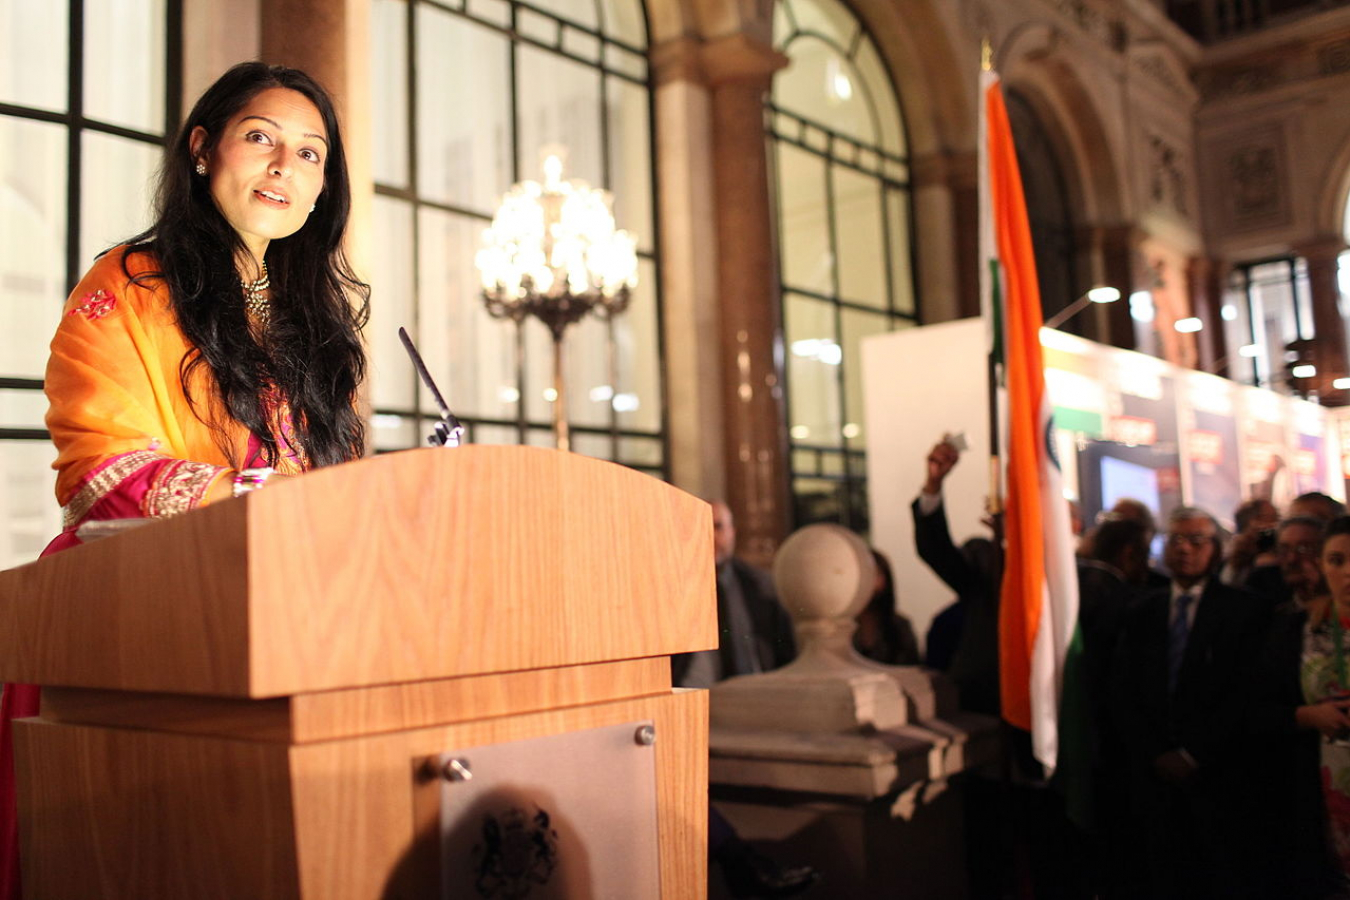 Priti Patel at an Indian Diaspora event at the Foreign & Commonwealth Office in London, 17 October 2014.